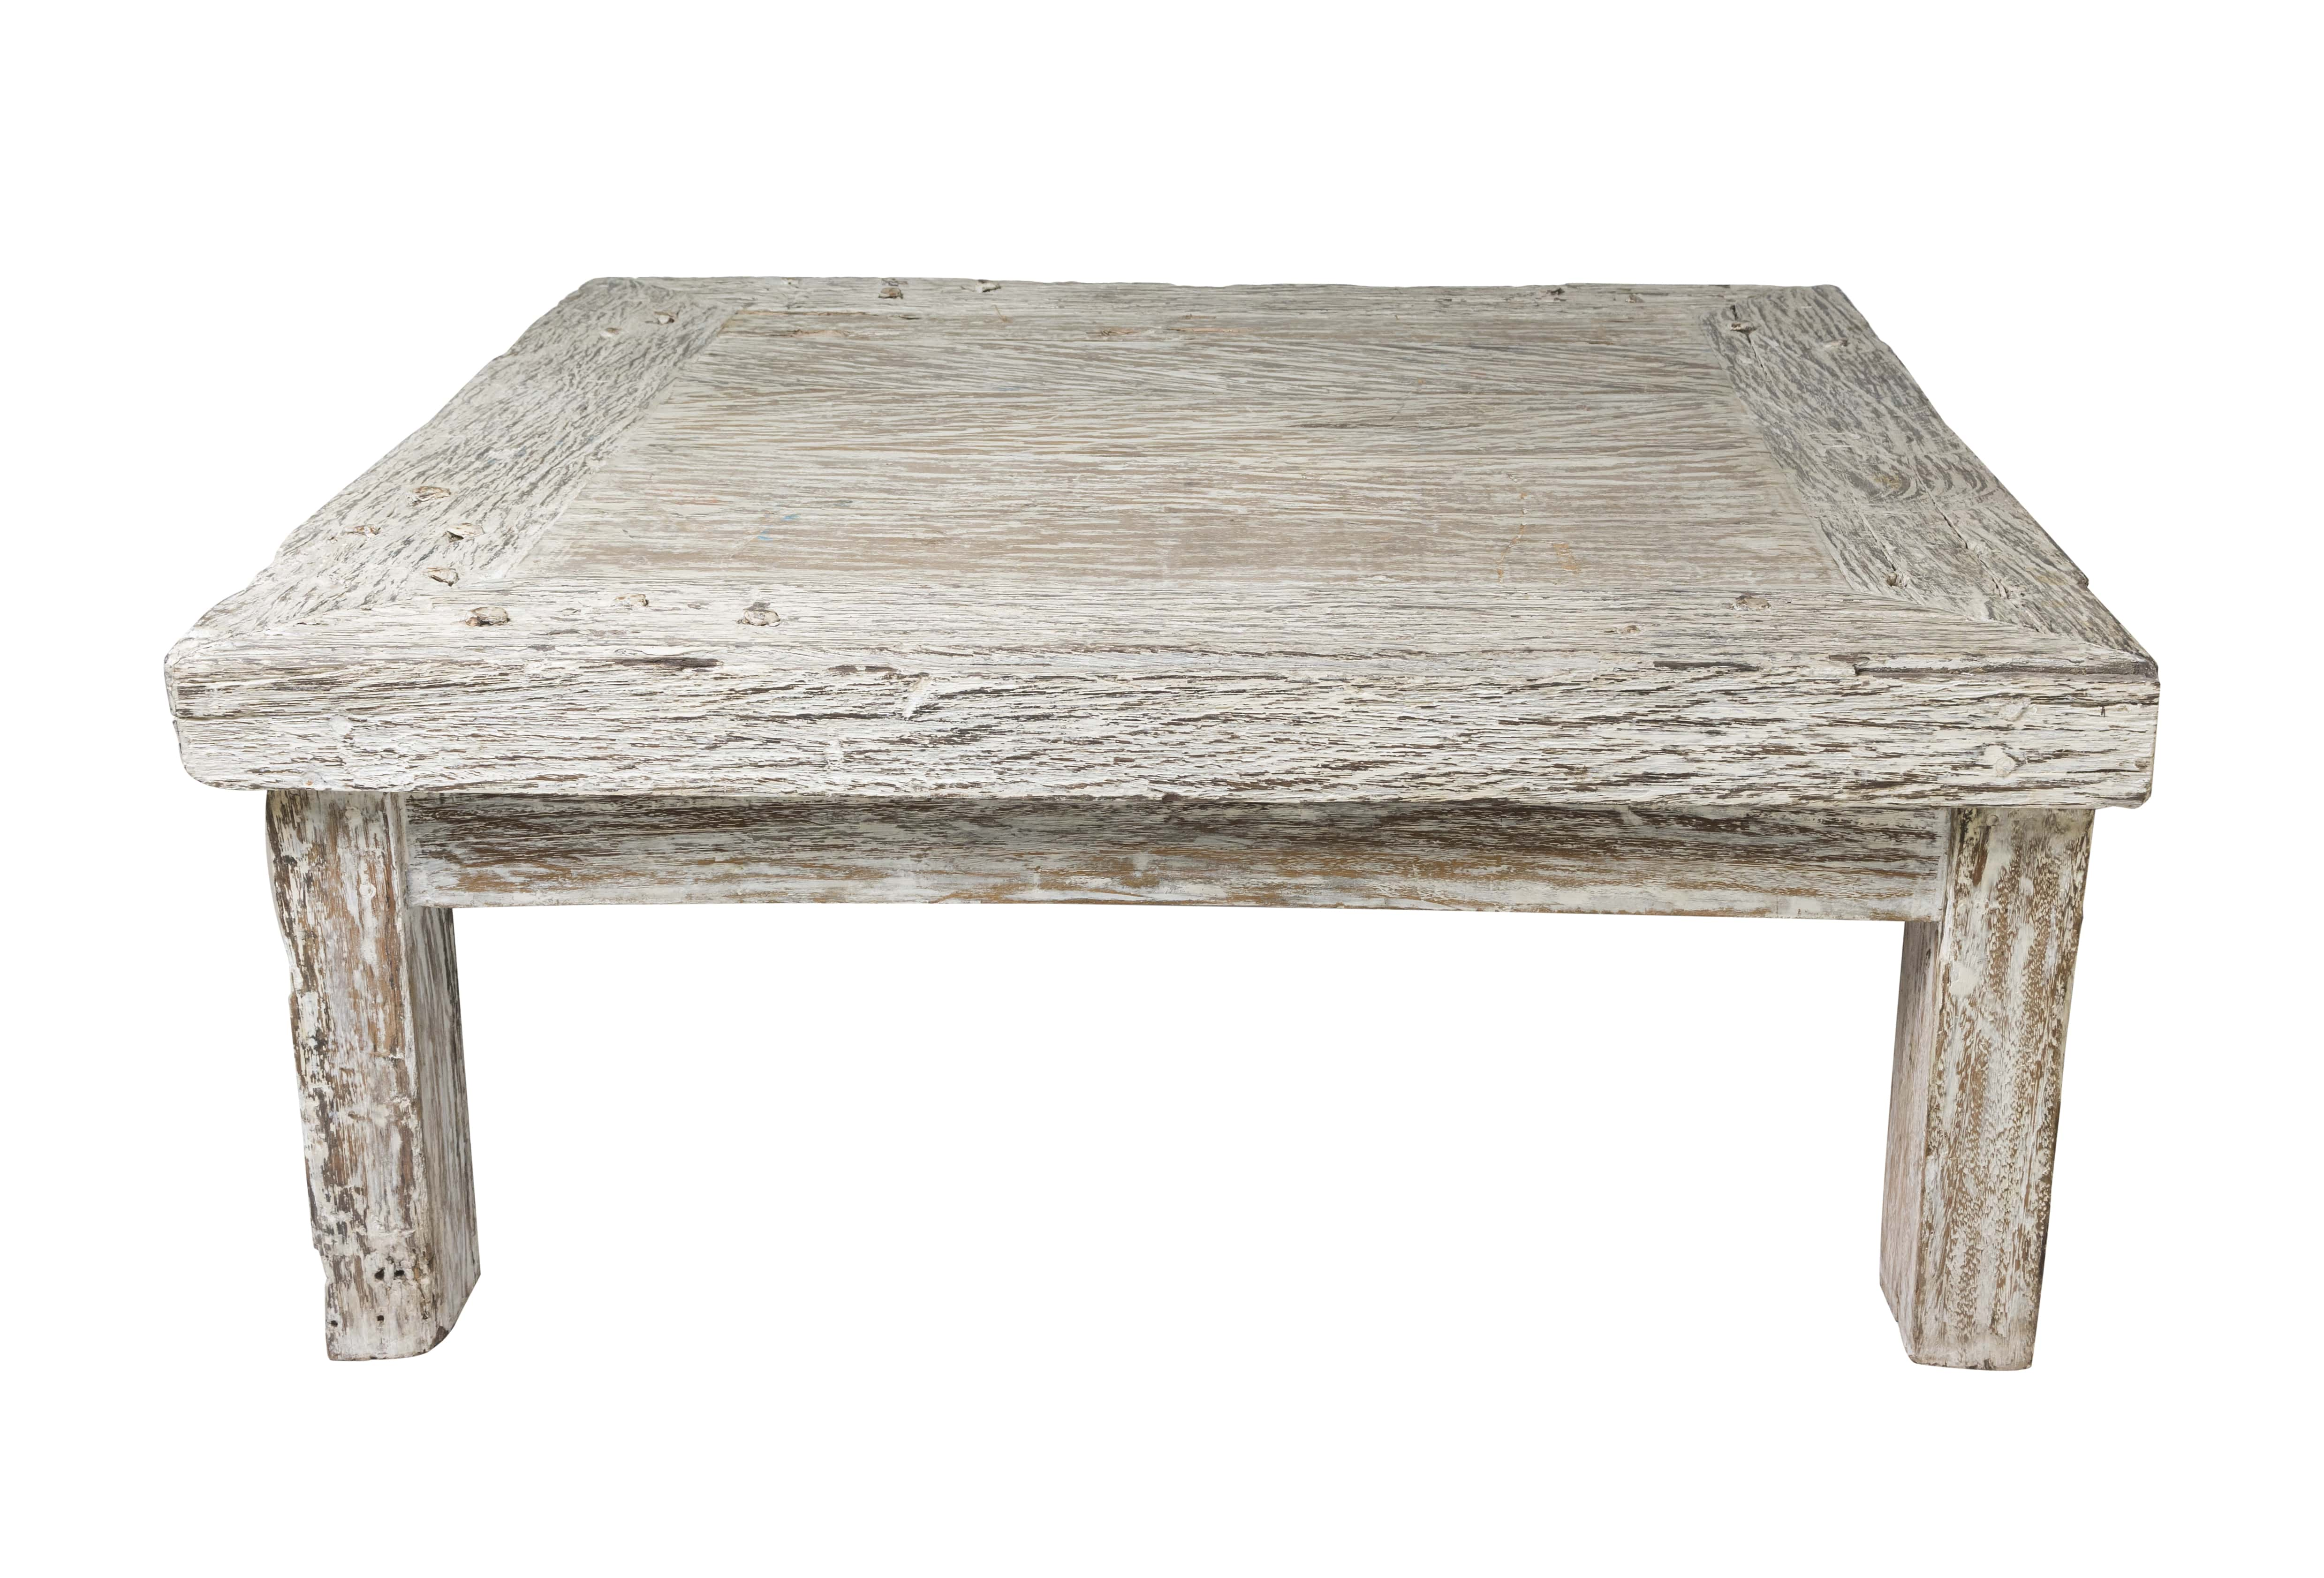 Tigris wooden table